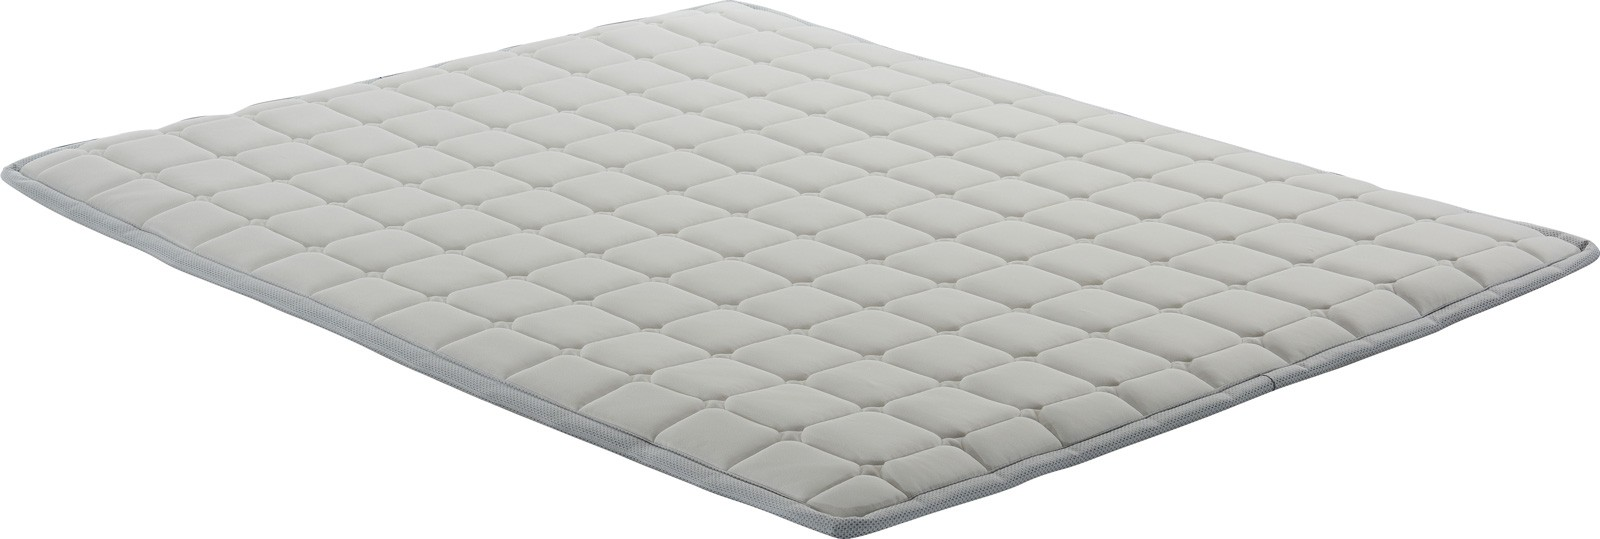 Sleep Cover Mattress Topper